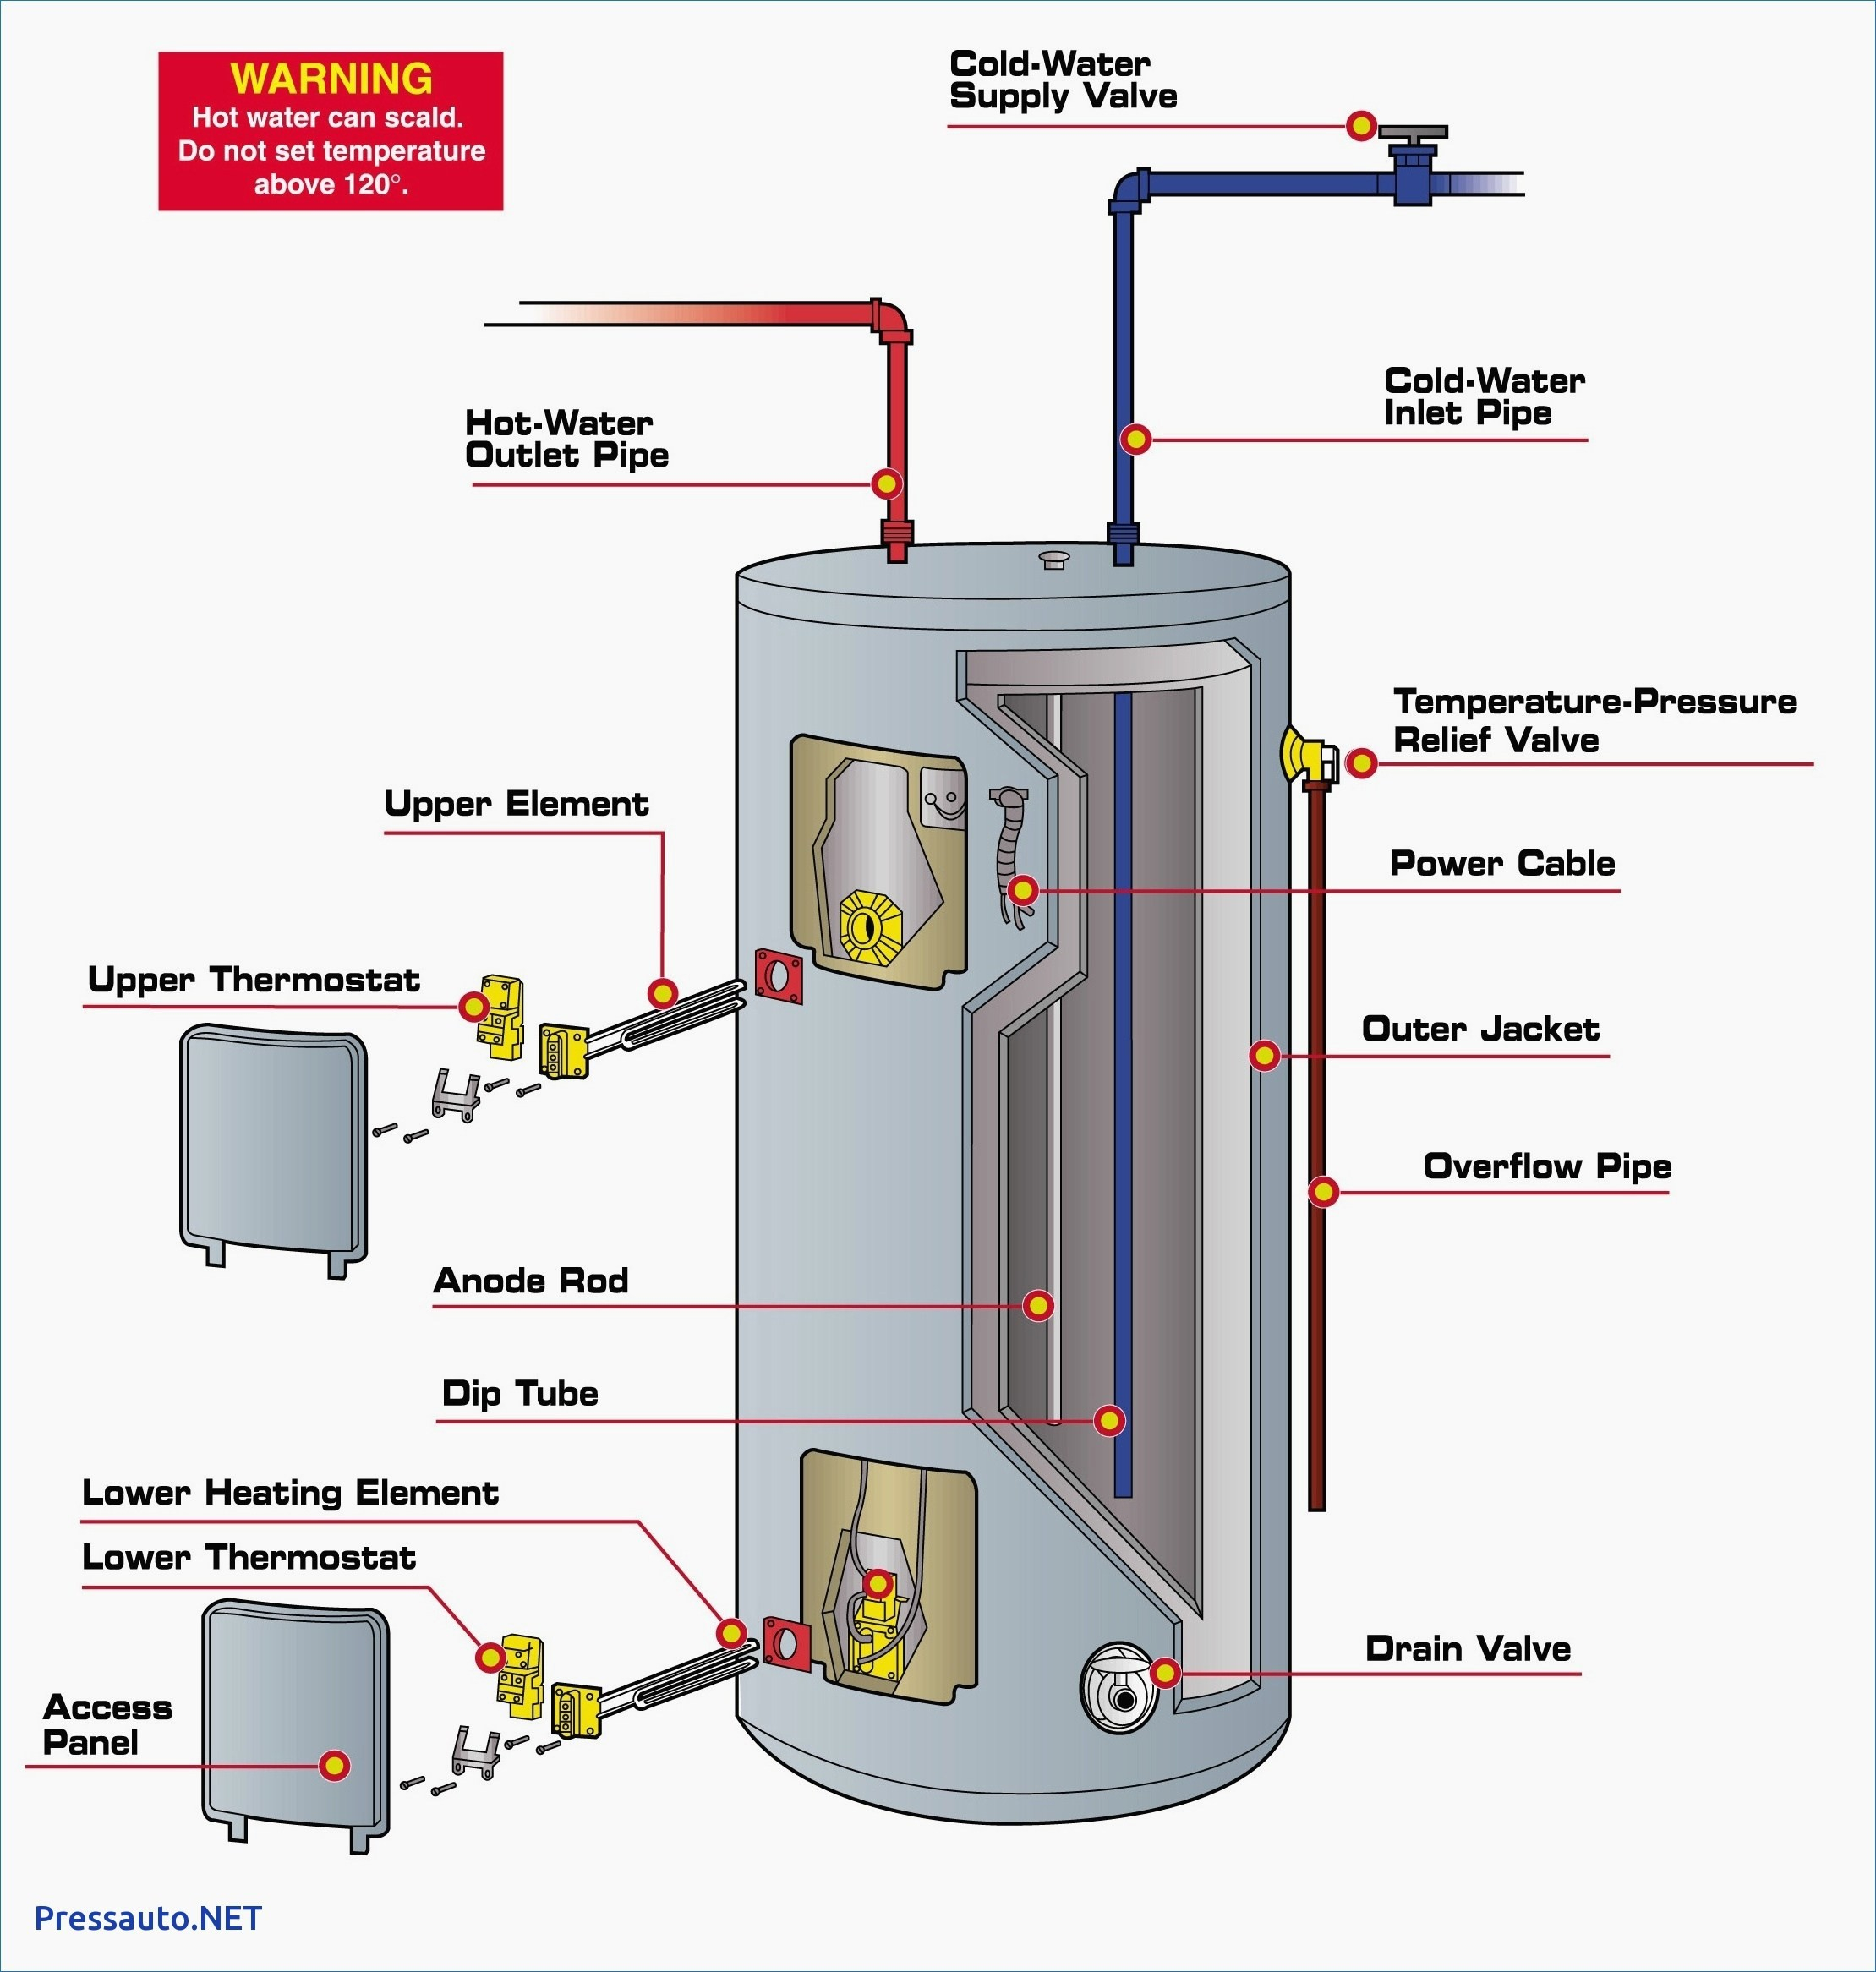 electric water heater wiring diagram Collection-Wiring Diagram Electric Water Heater Fresh New Hot Water Heater Wiring Diagram Diagram 3-c